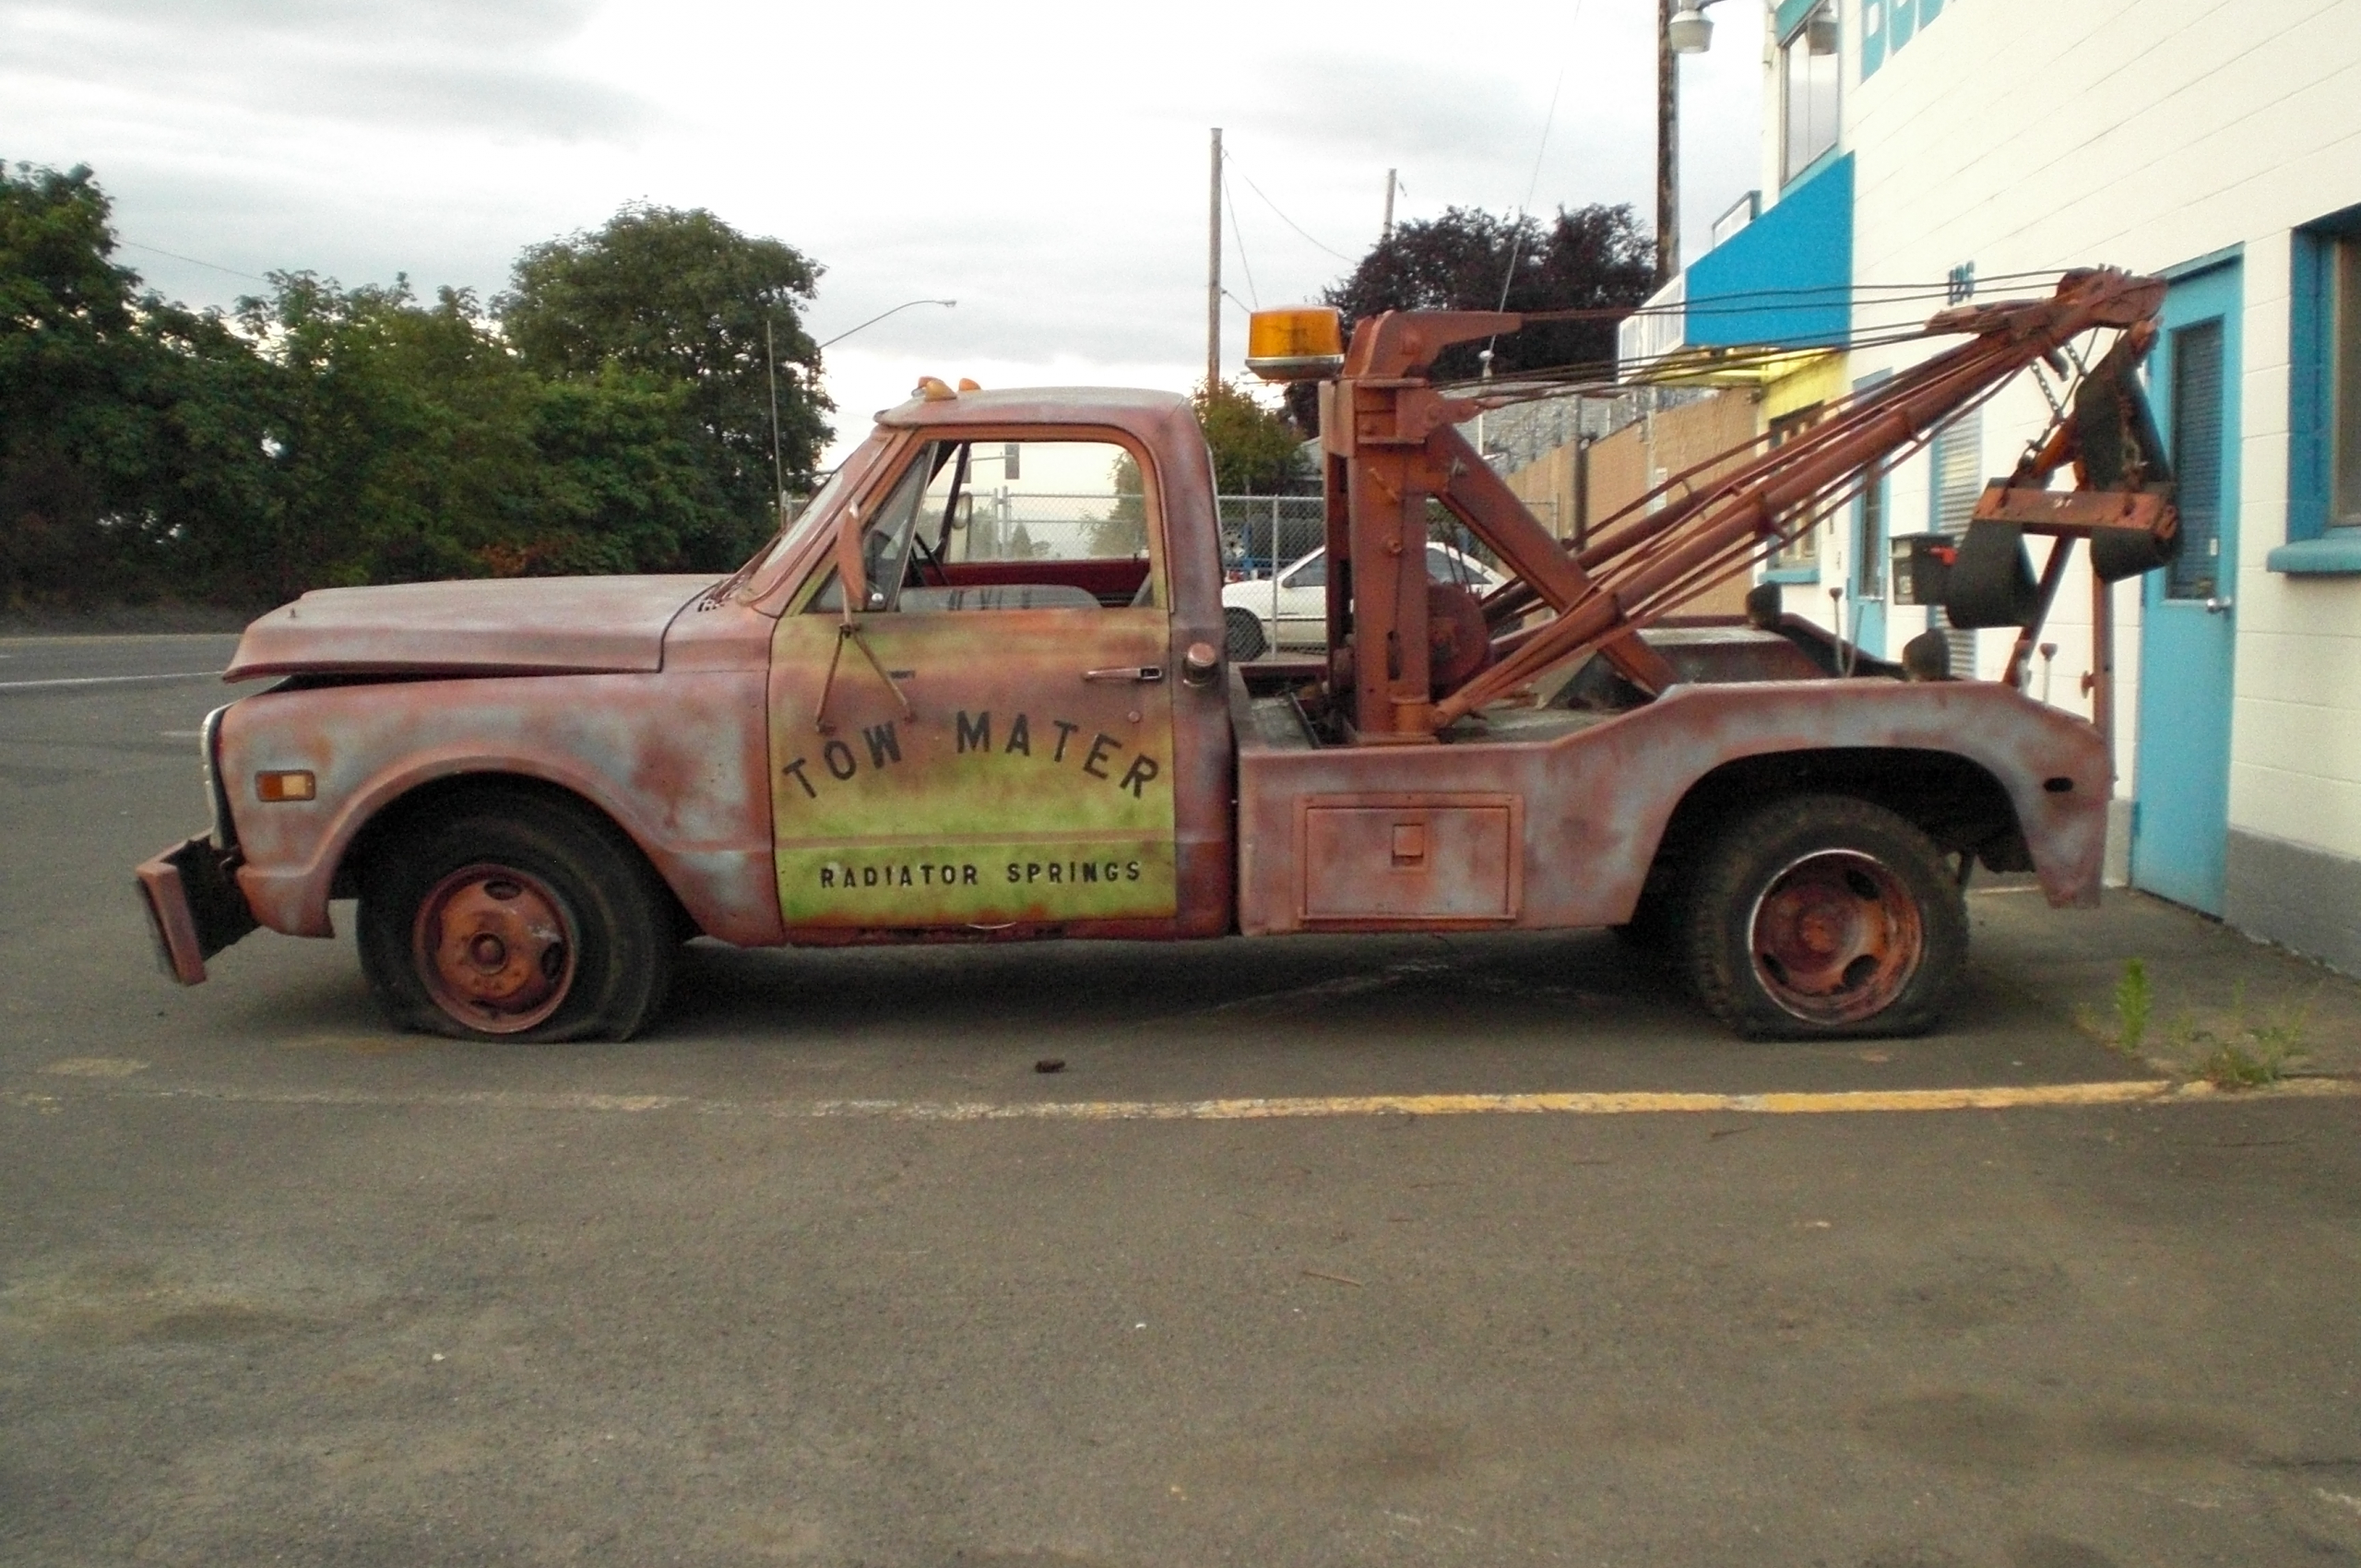 Free download Tow Mater Images